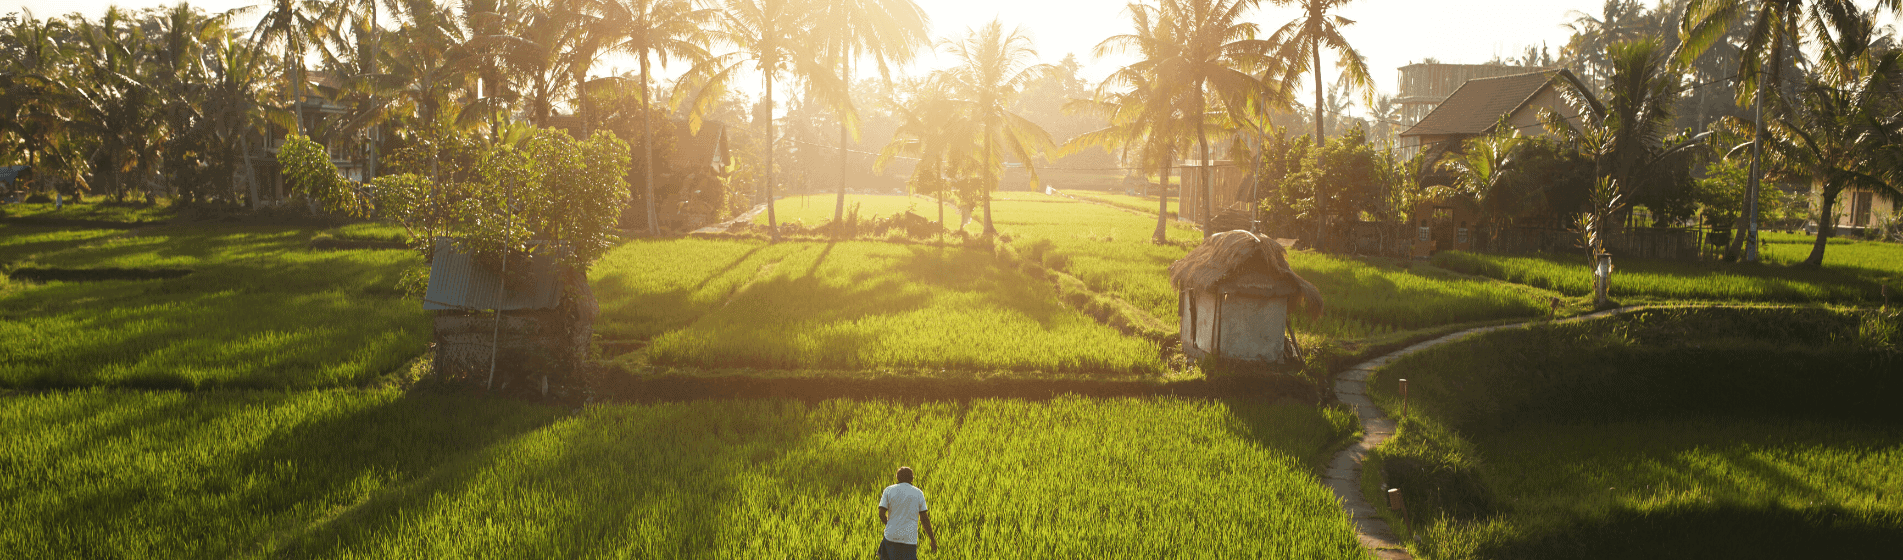 How I lost $5,000 investing in the Laos Rice Bank